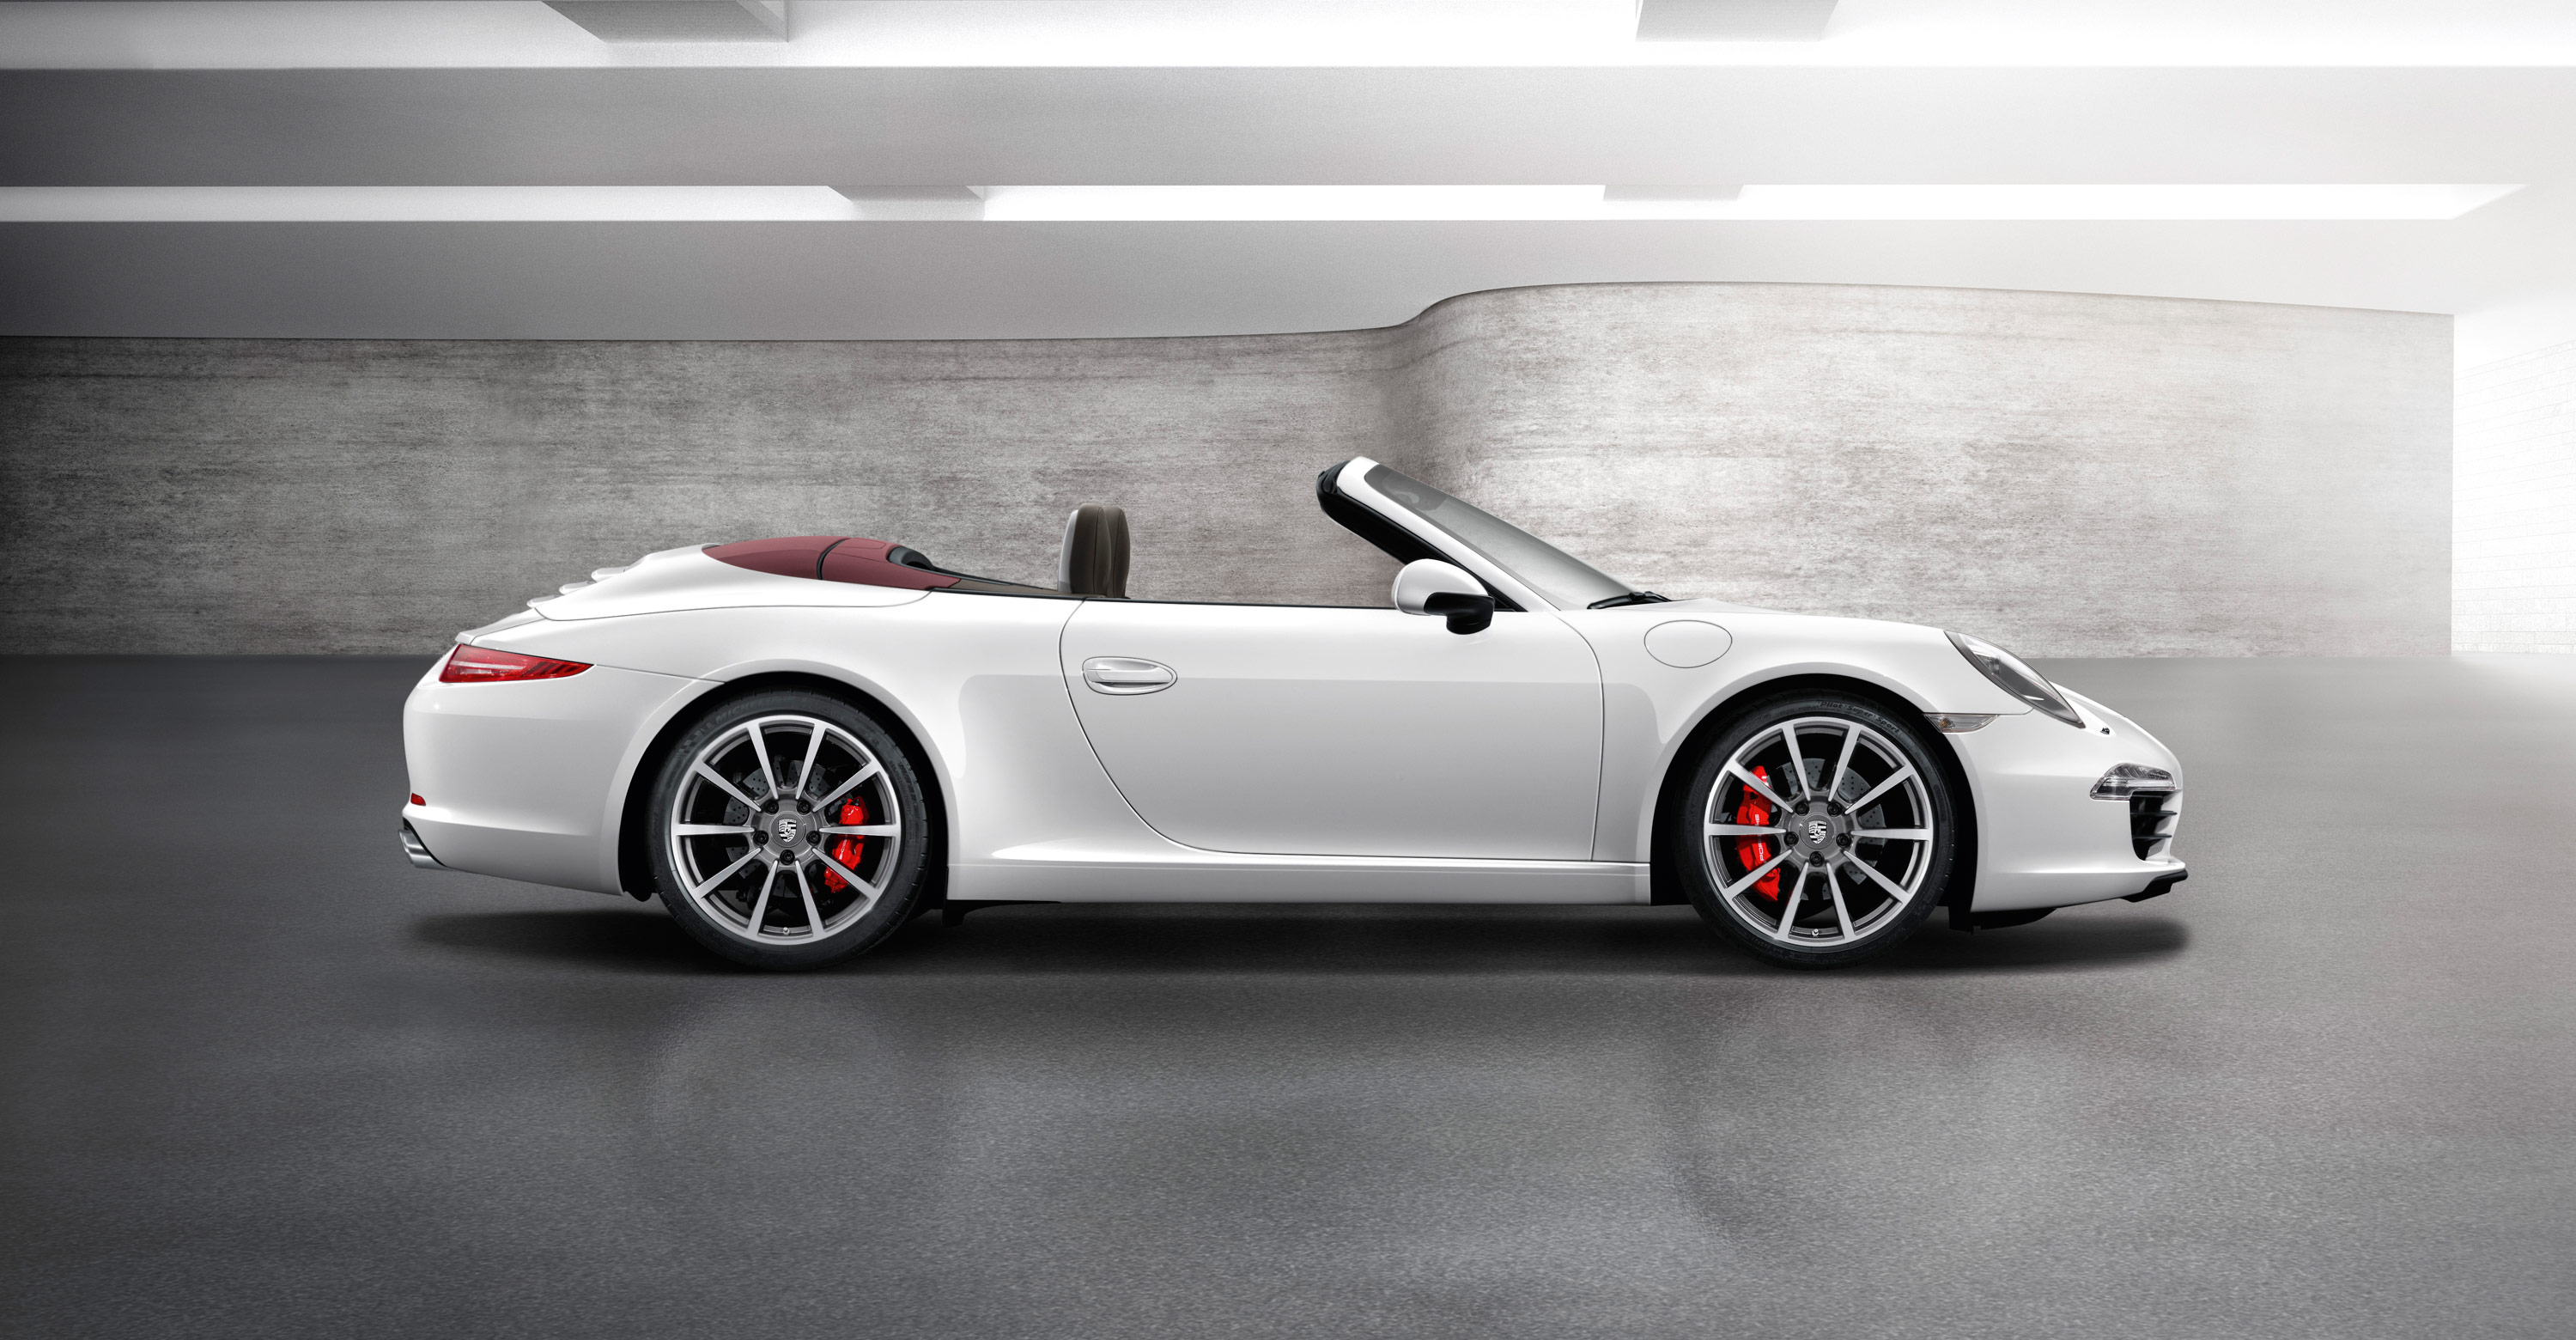 2012 white porsche 911 carrera s cabriolet wallpapers for Garage mercedes avignon